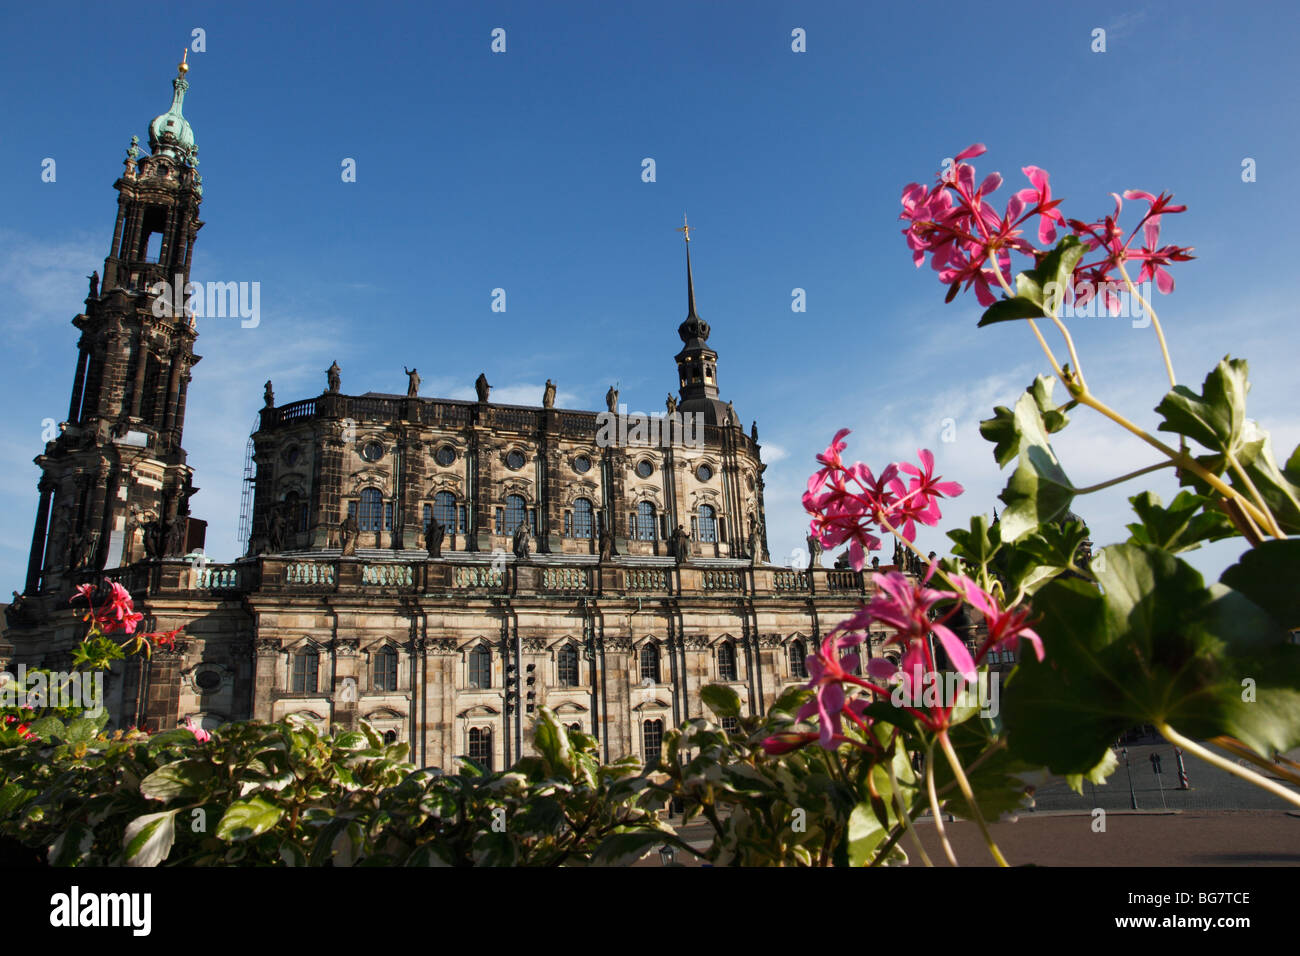 Germany, Saxony, Dresden, Old Town, Hofkirche, Kathedrale St. Trinitatis, St. Trinity Cathedral, Flowers in Foreground - Stock Image